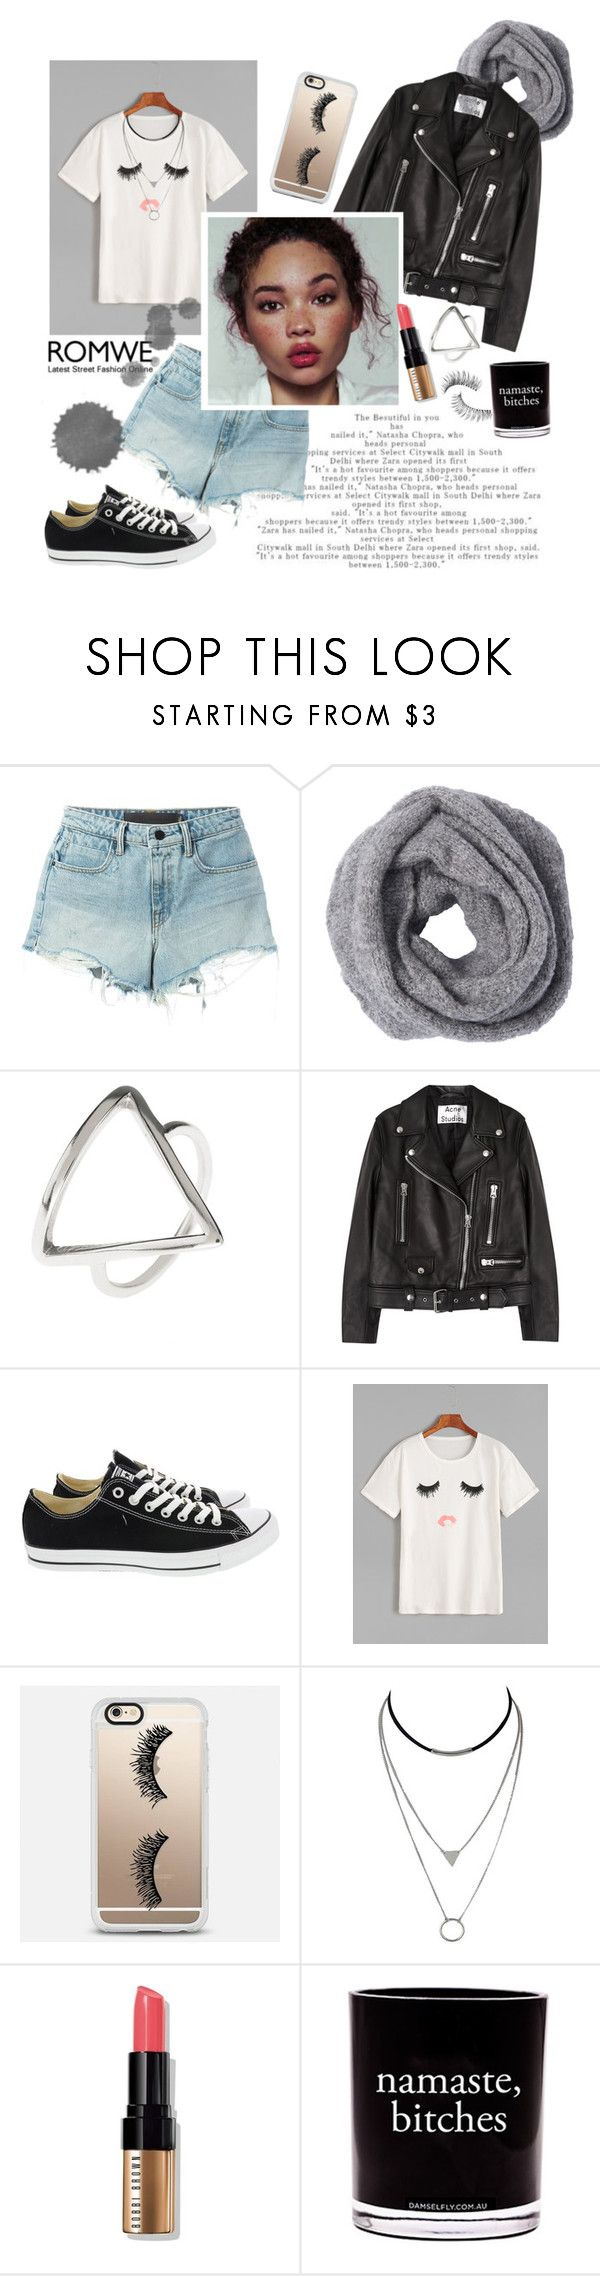 """""""Big Eyelashes + Pink Lipstick"""" by drinkdionysus ❤ liked on Polyvore featuring T By Alexander Wang, Latelita, Acne Studios, Converse, Casetify, Bobbi Brown Cosmetics, Damselfly Candles and Trish McEvoy"""